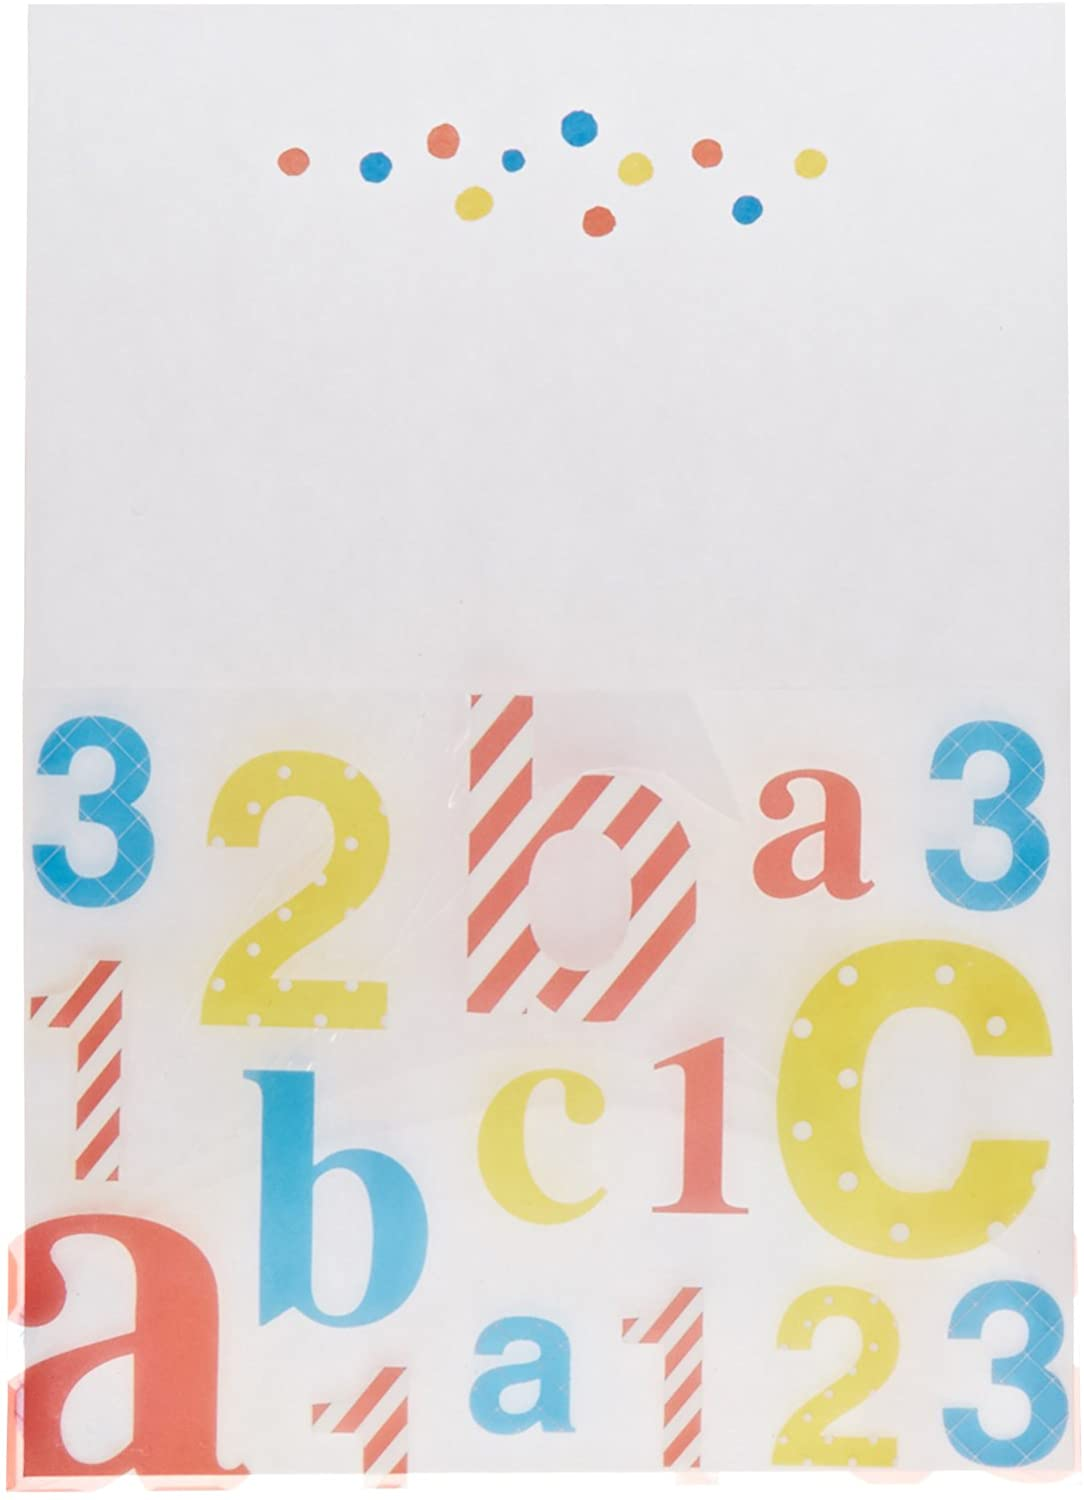 Mara-Mi ABC 123 Baby Acetate Pocket Imprintable Invitation, 10-Count (46010)